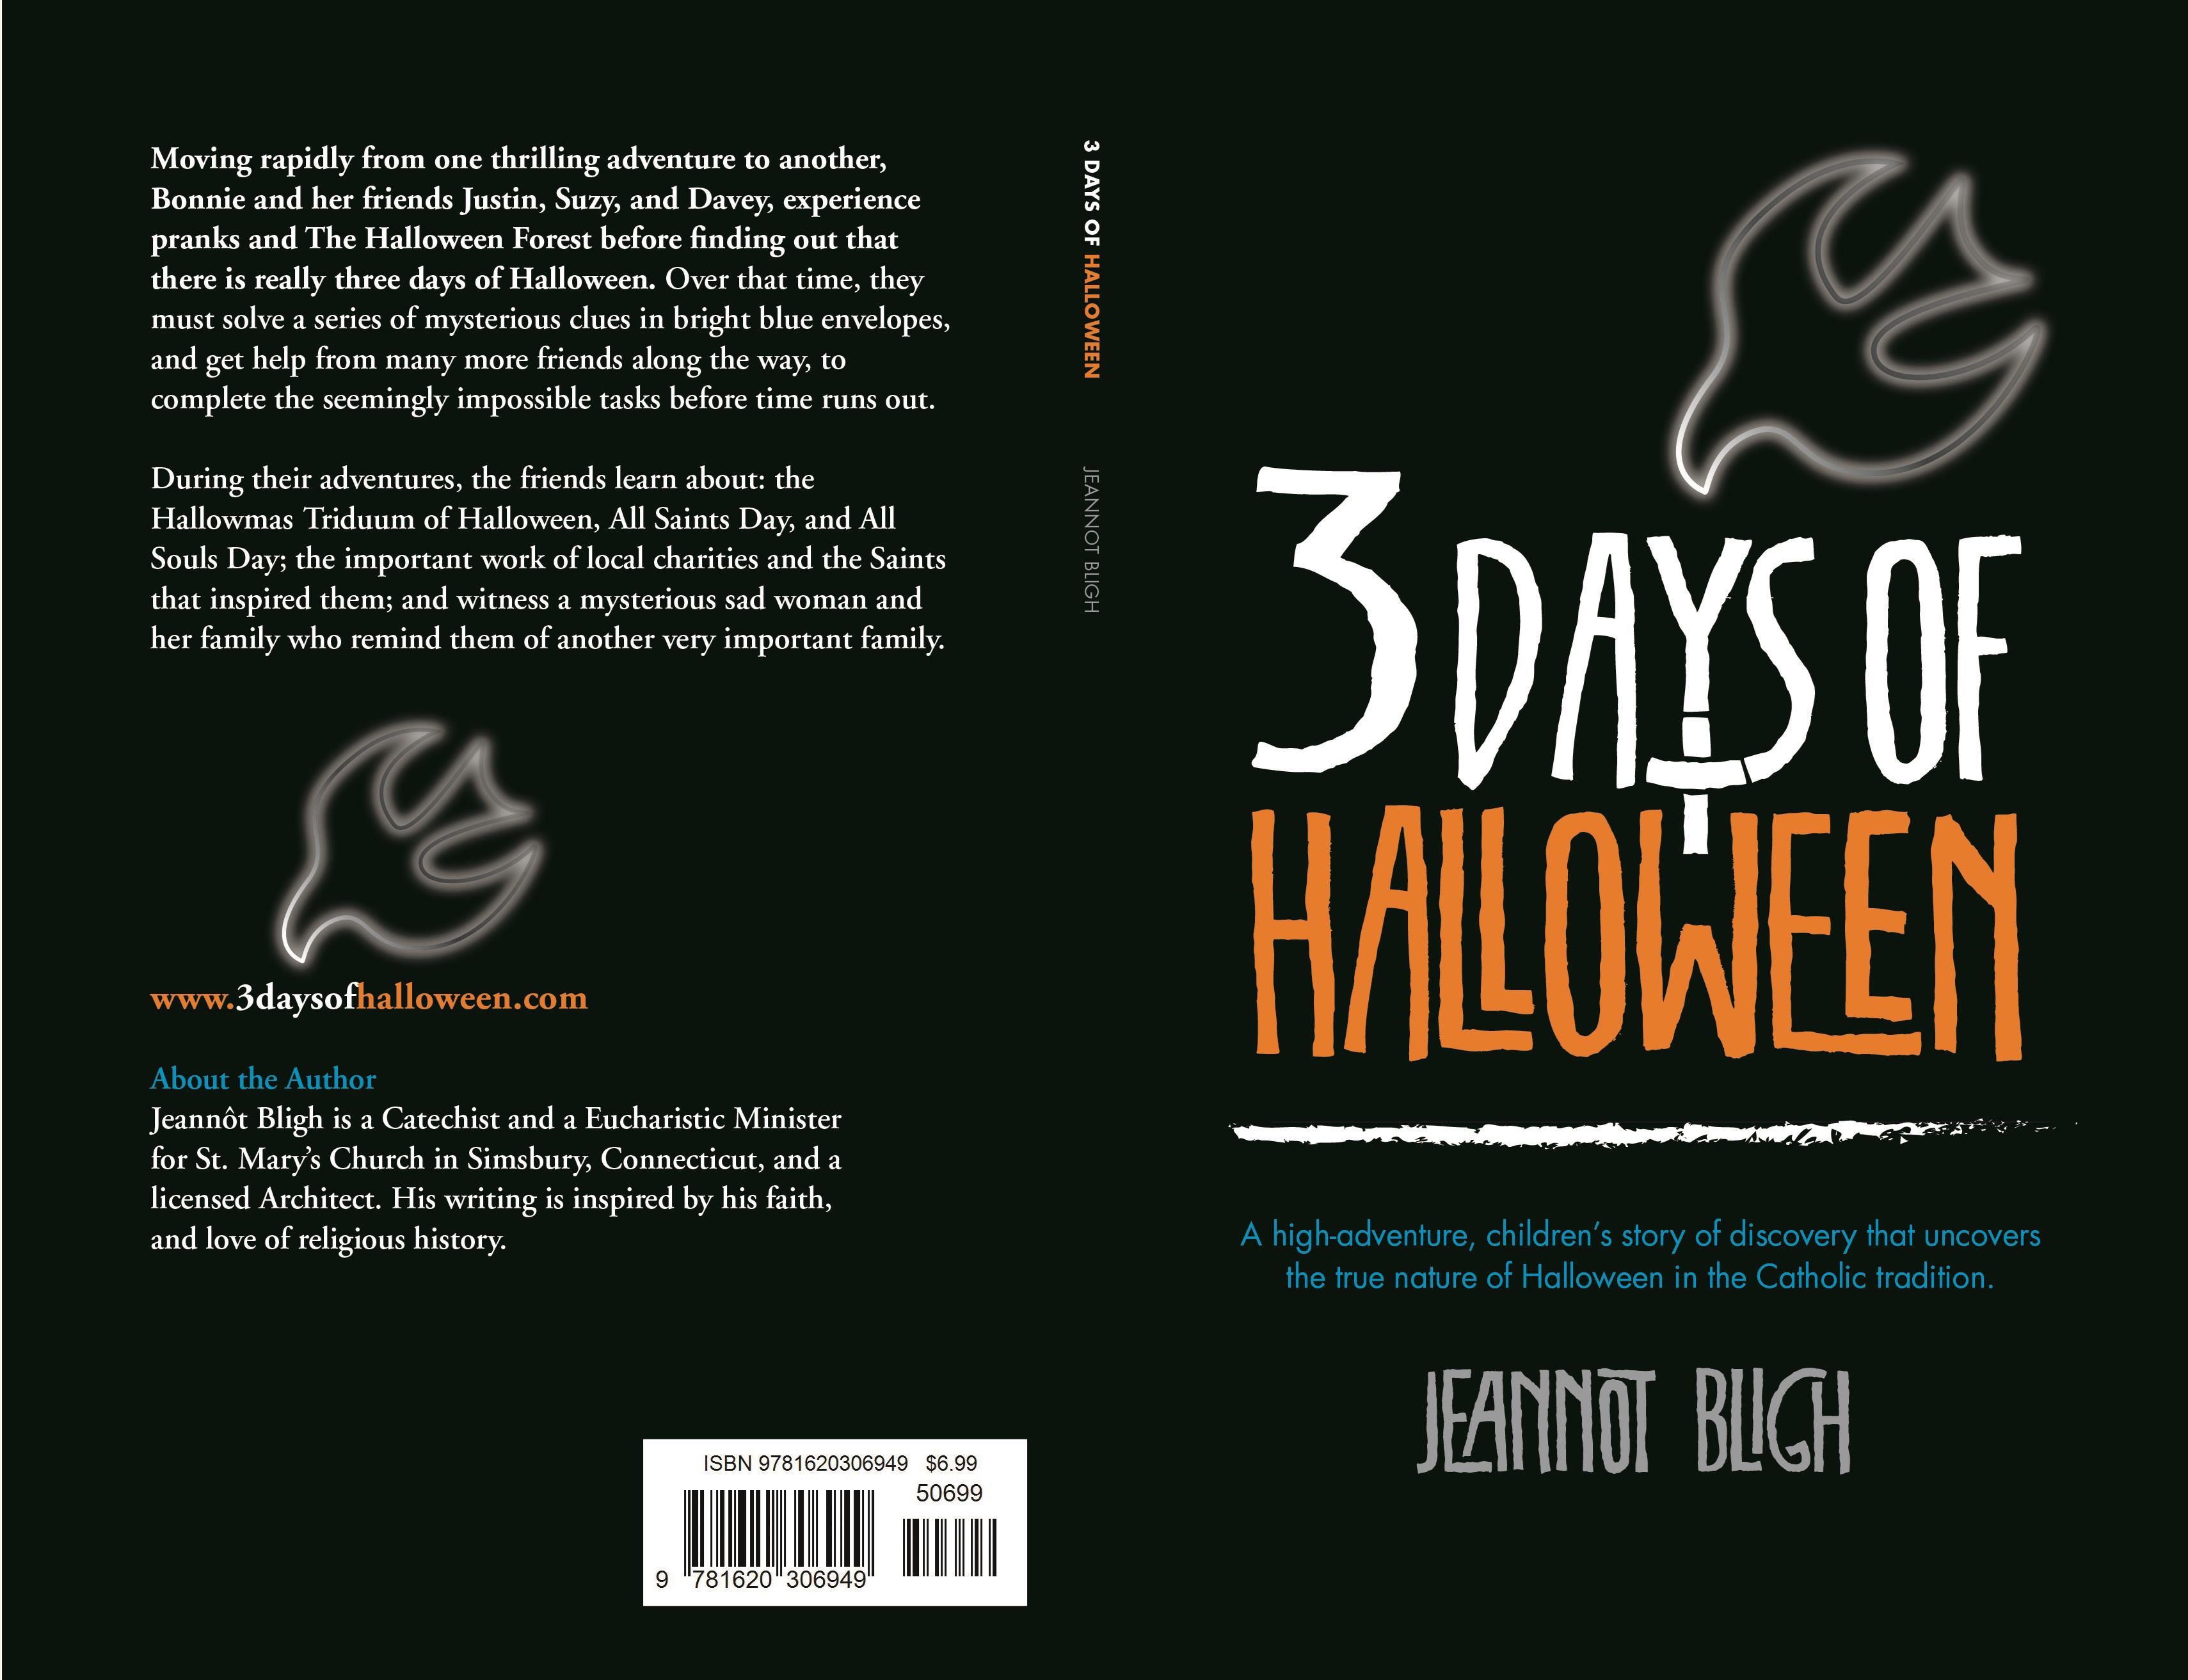 3 days of halloweenjeannot bligh : $6.99 : thebookpatch